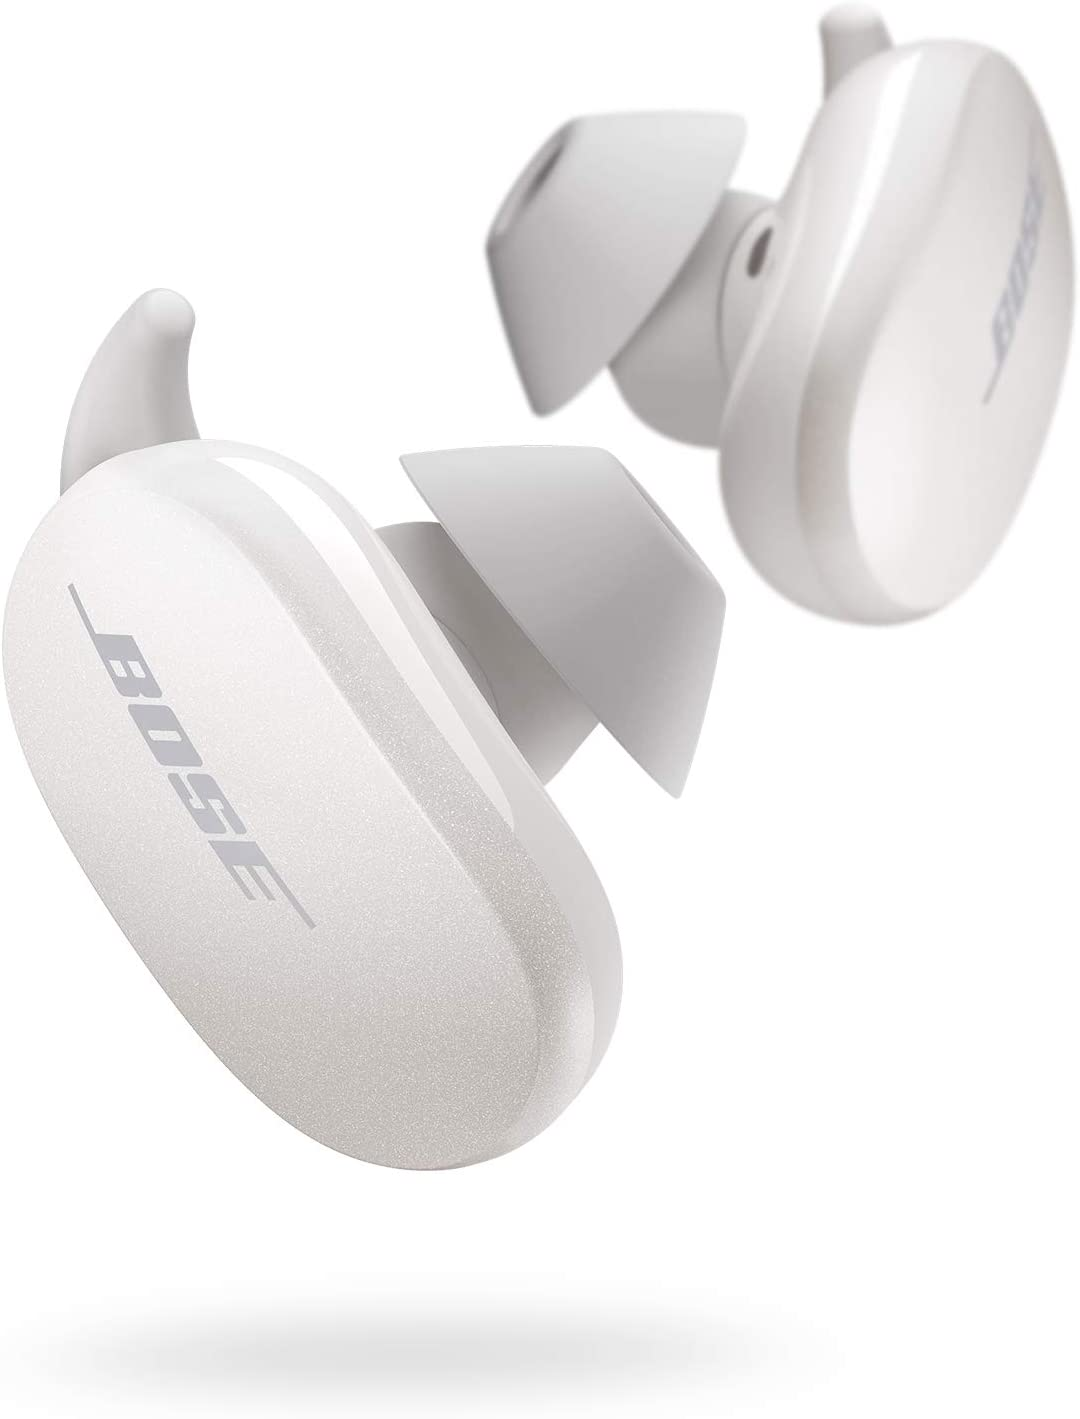 Bose QuietComfort Earbuds 完全ワイヤレス